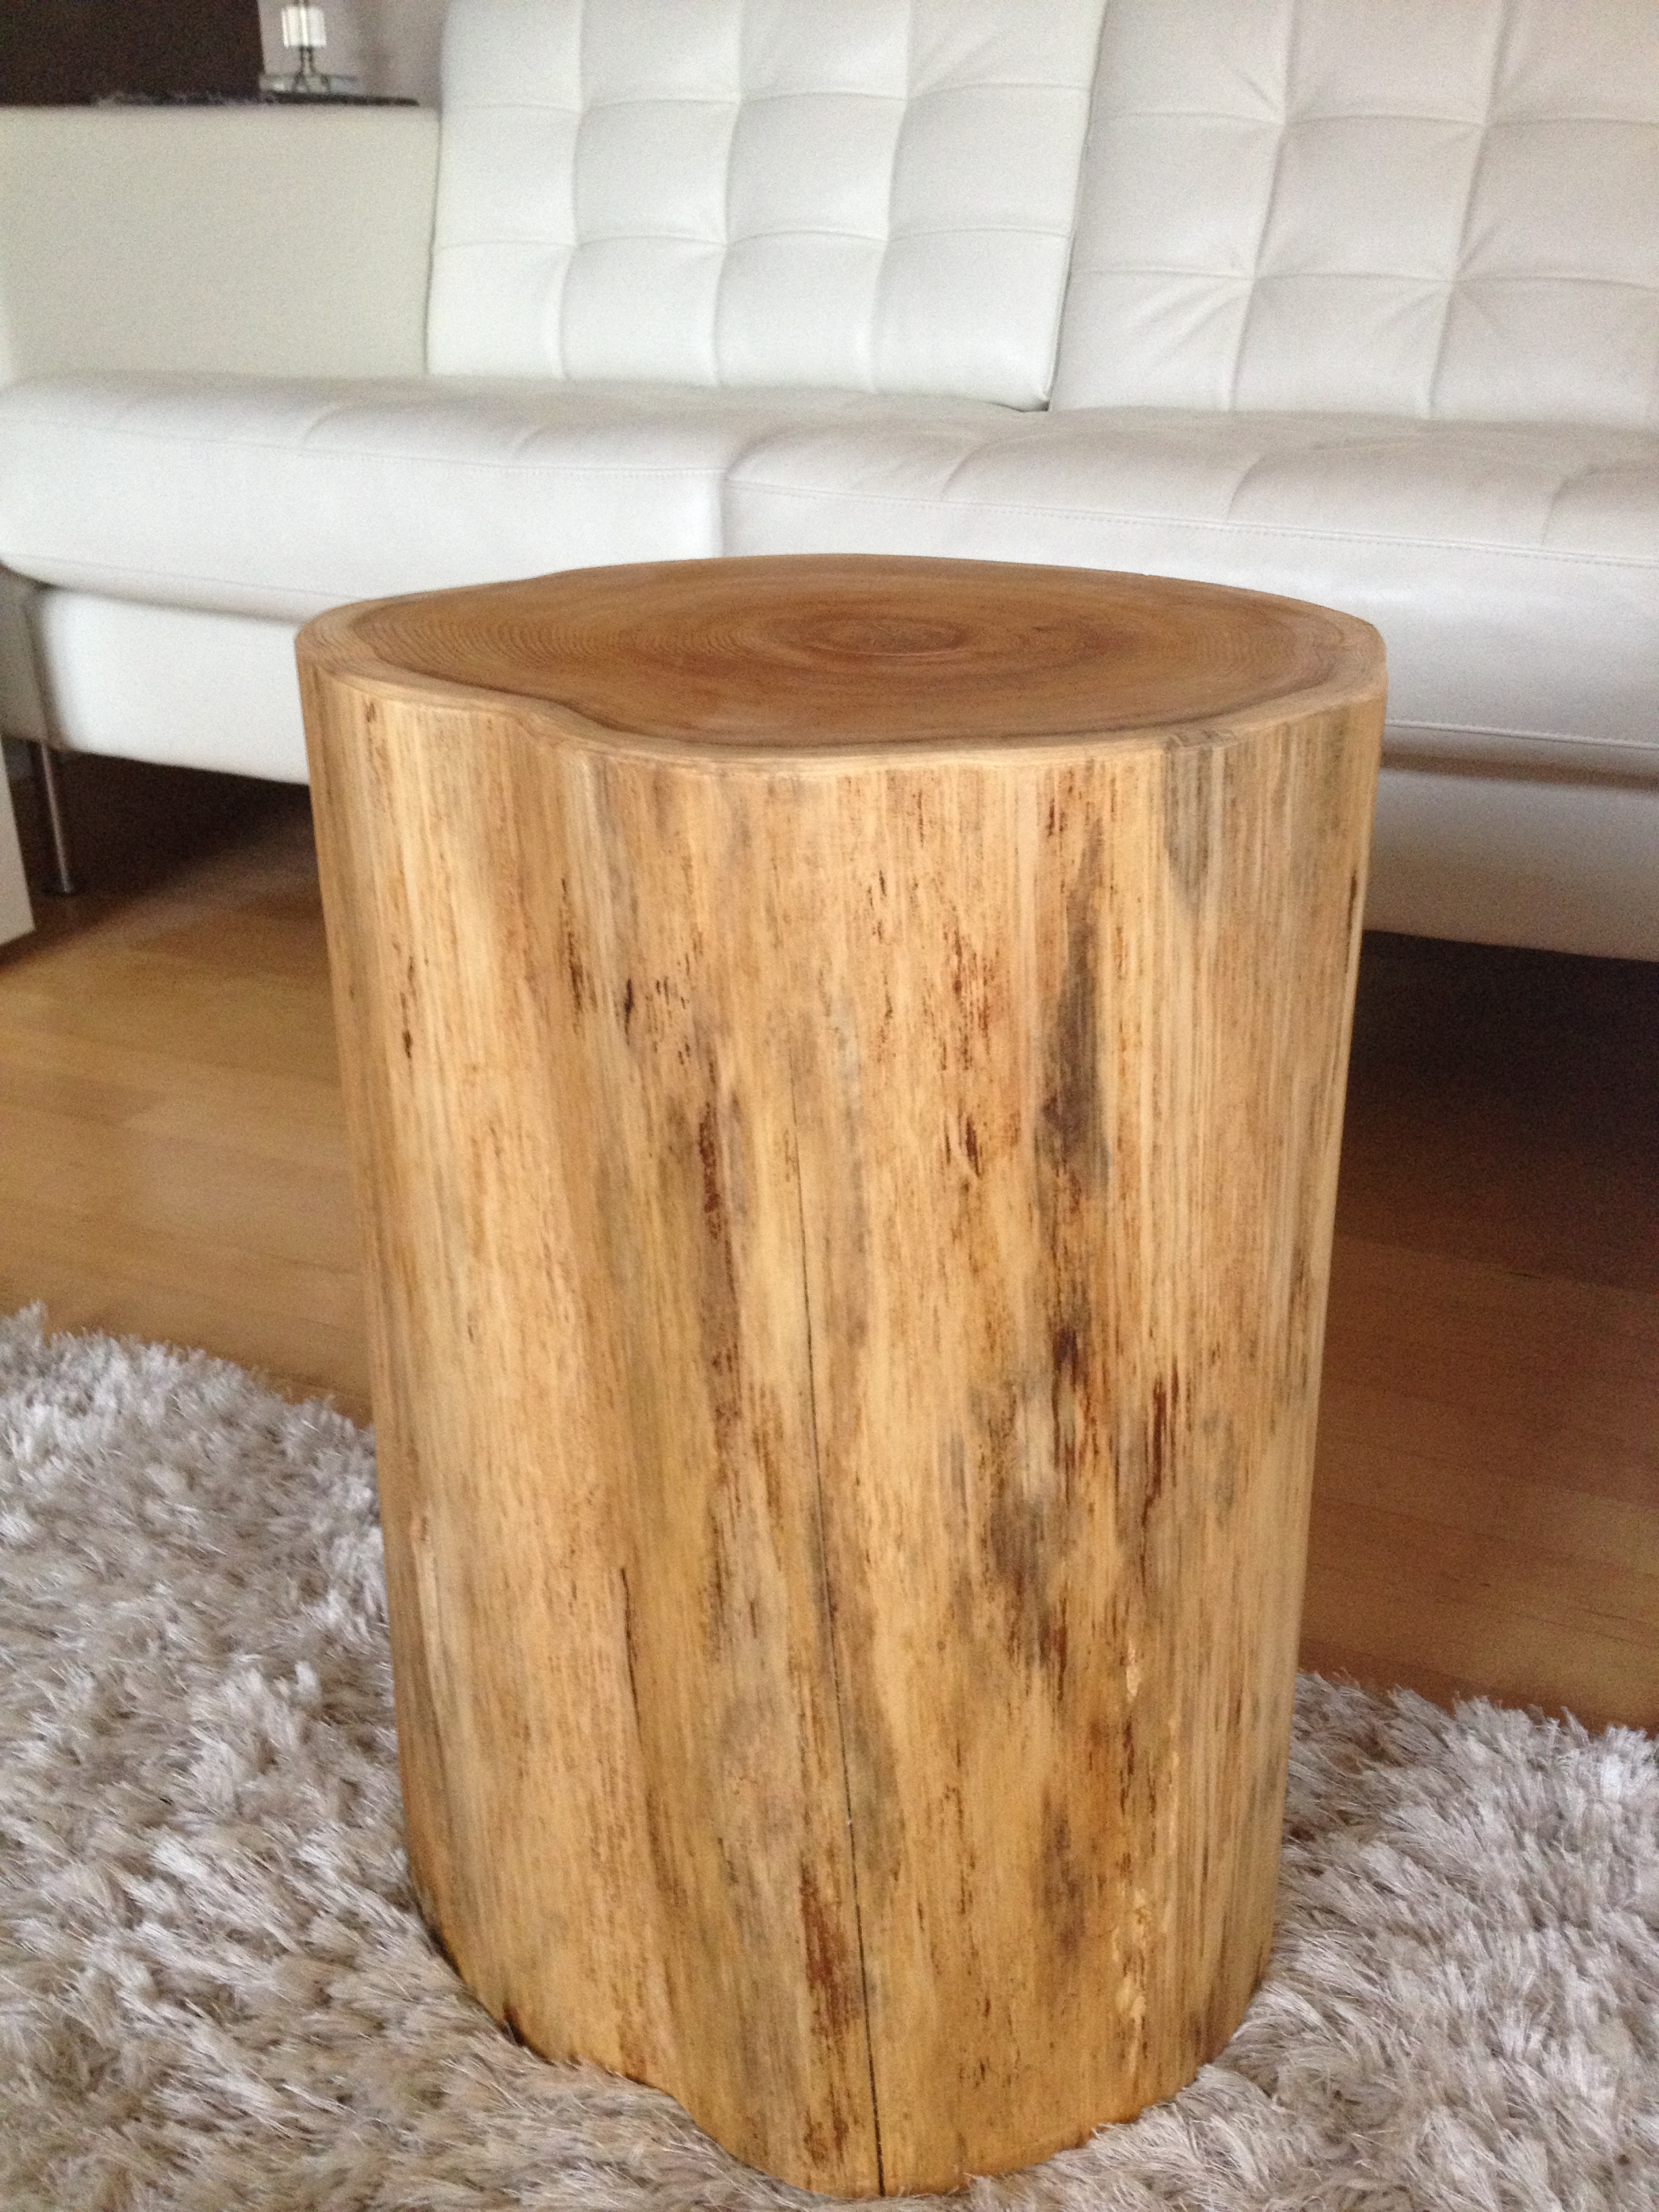 Stump side table log side tables rustic coffee table for Wood stump end table